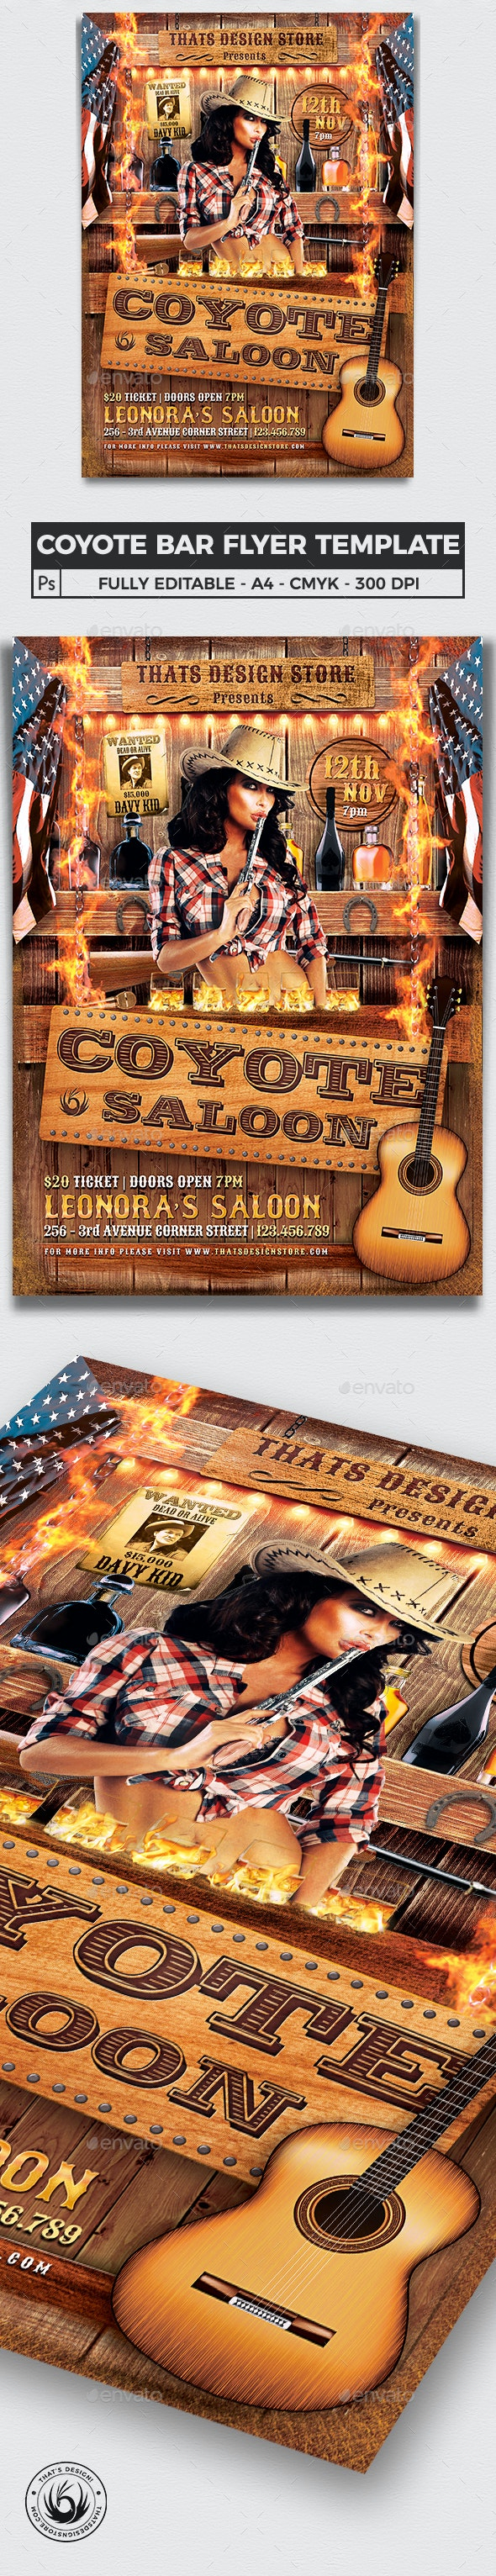 Coyote Bar Flyer Template - Clubs & Parties Events